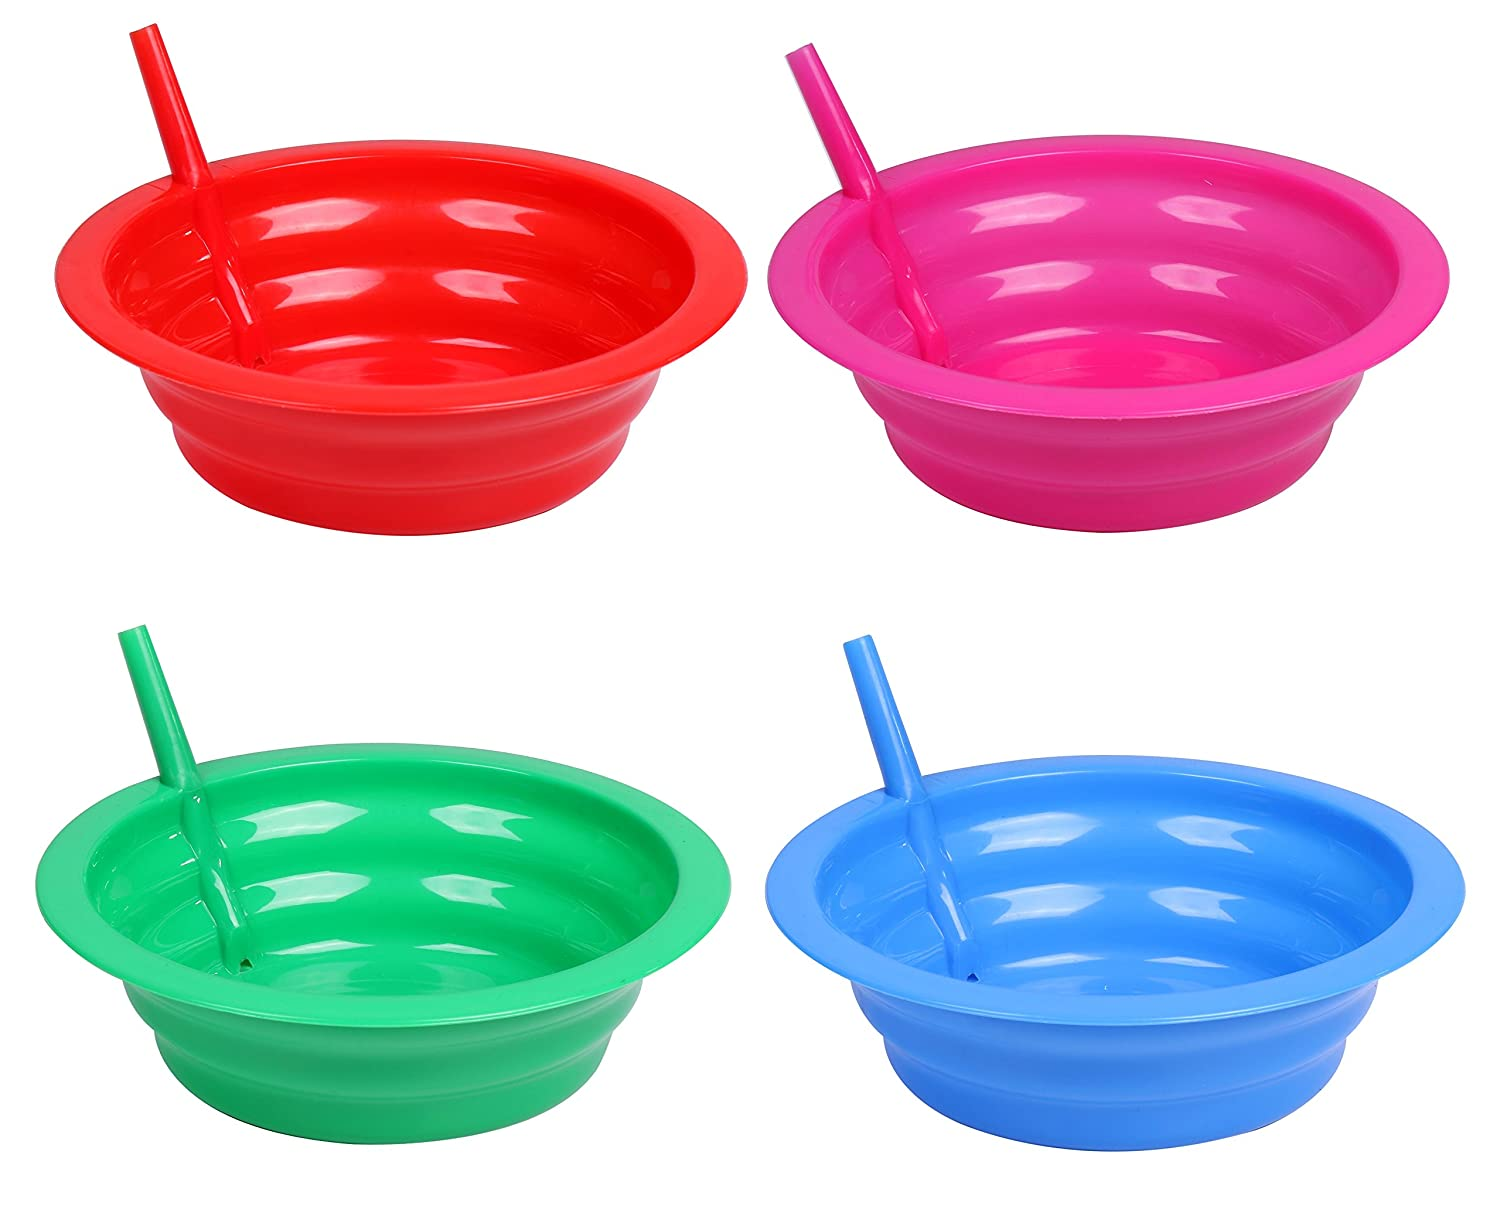 Cereal Bowl With Straw for Kids - Four Pack in Blue, Red, Green, and Pink Cibi